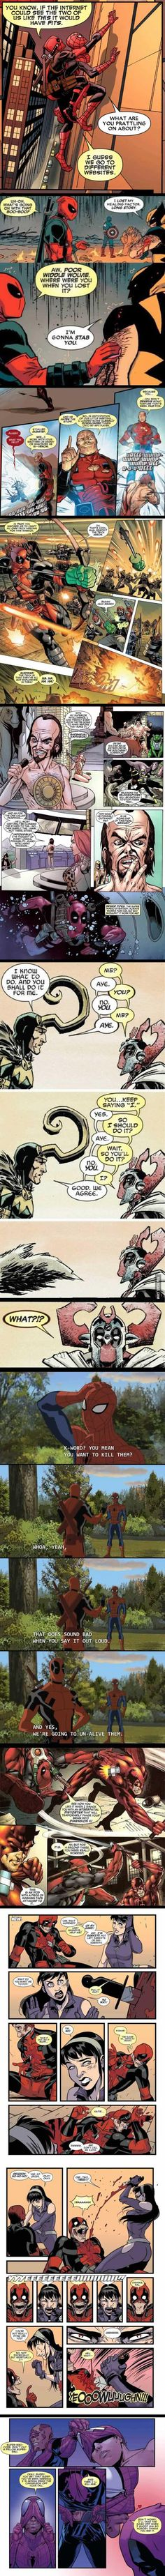 Resumen de Deadpool, parte 2